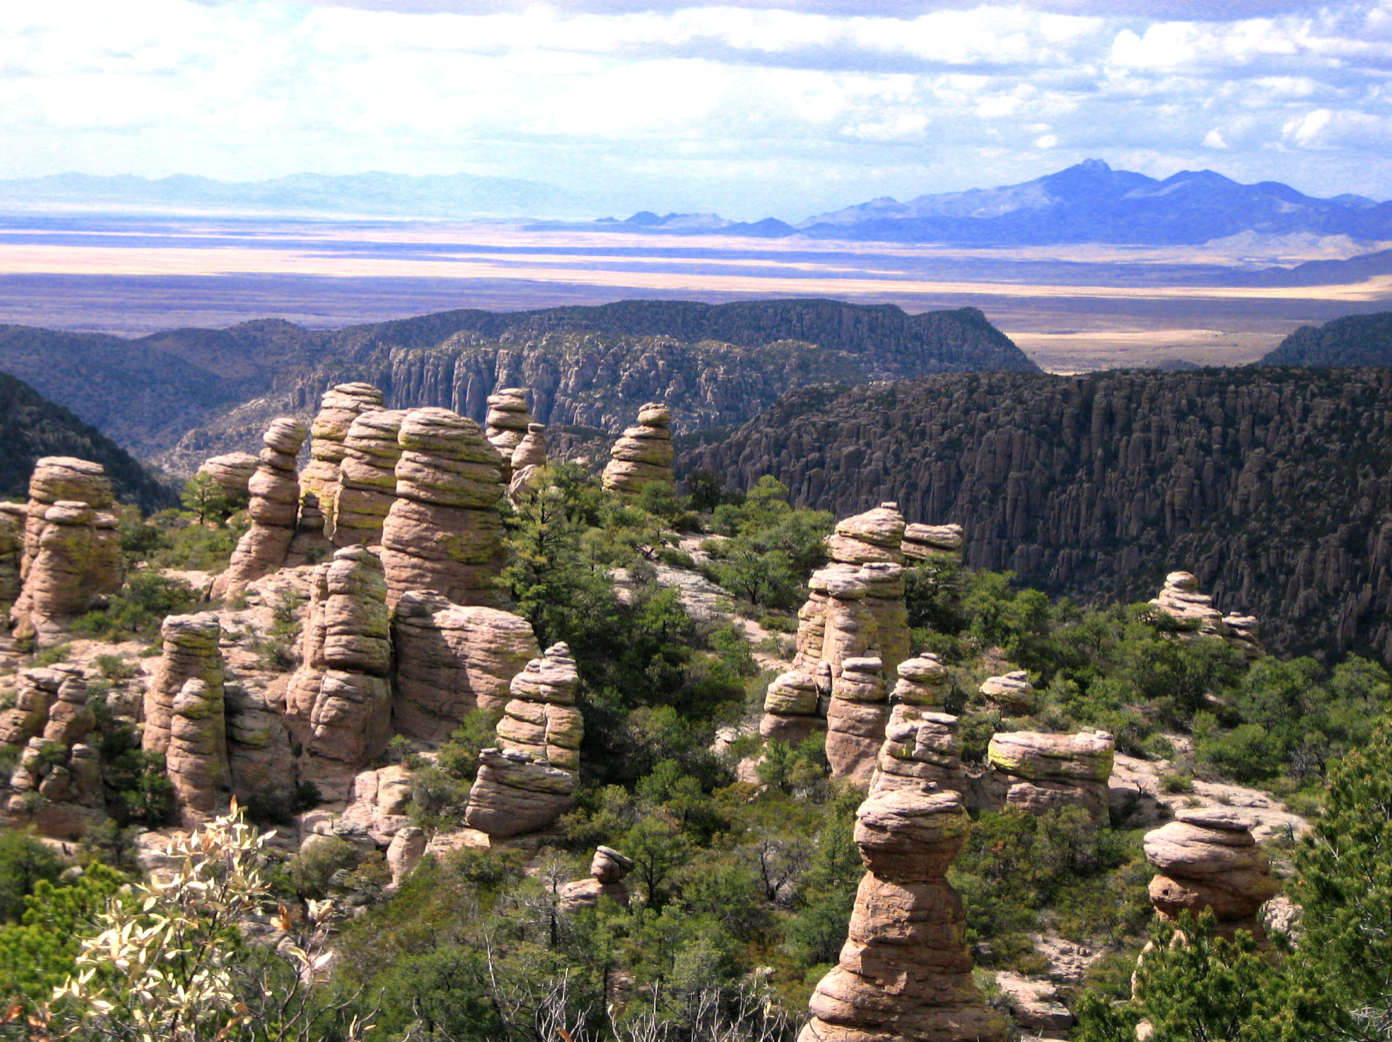 High elevation region of a section of the Madrean Sky Islands in Arizona.